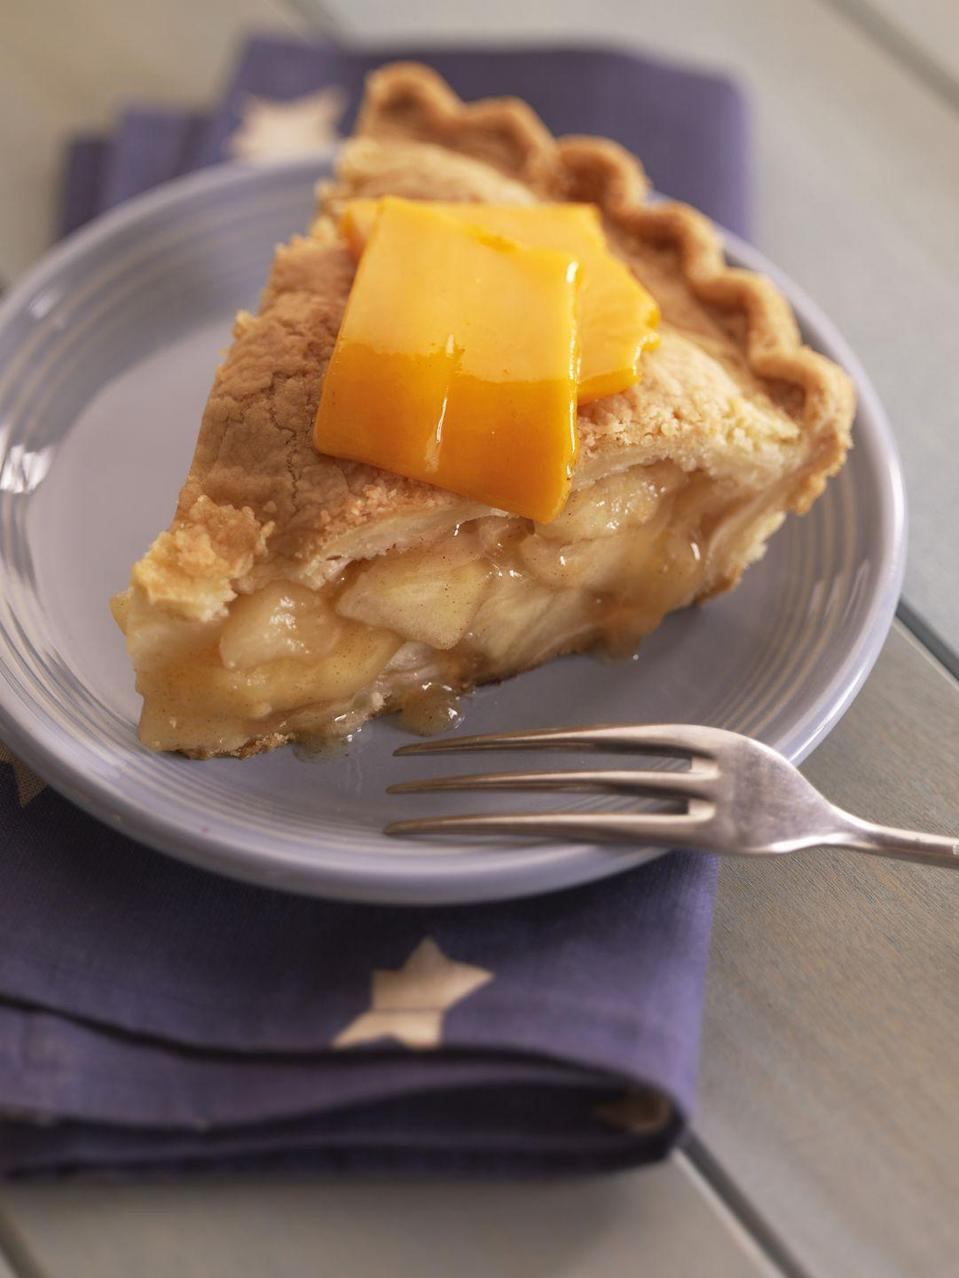 <p>Cheese deserves a leading role in the lives of all Wisconsin residents according to state law—it's even been made illegal to serve apple pie in public without the addition of a slice of cheese on top.</p>